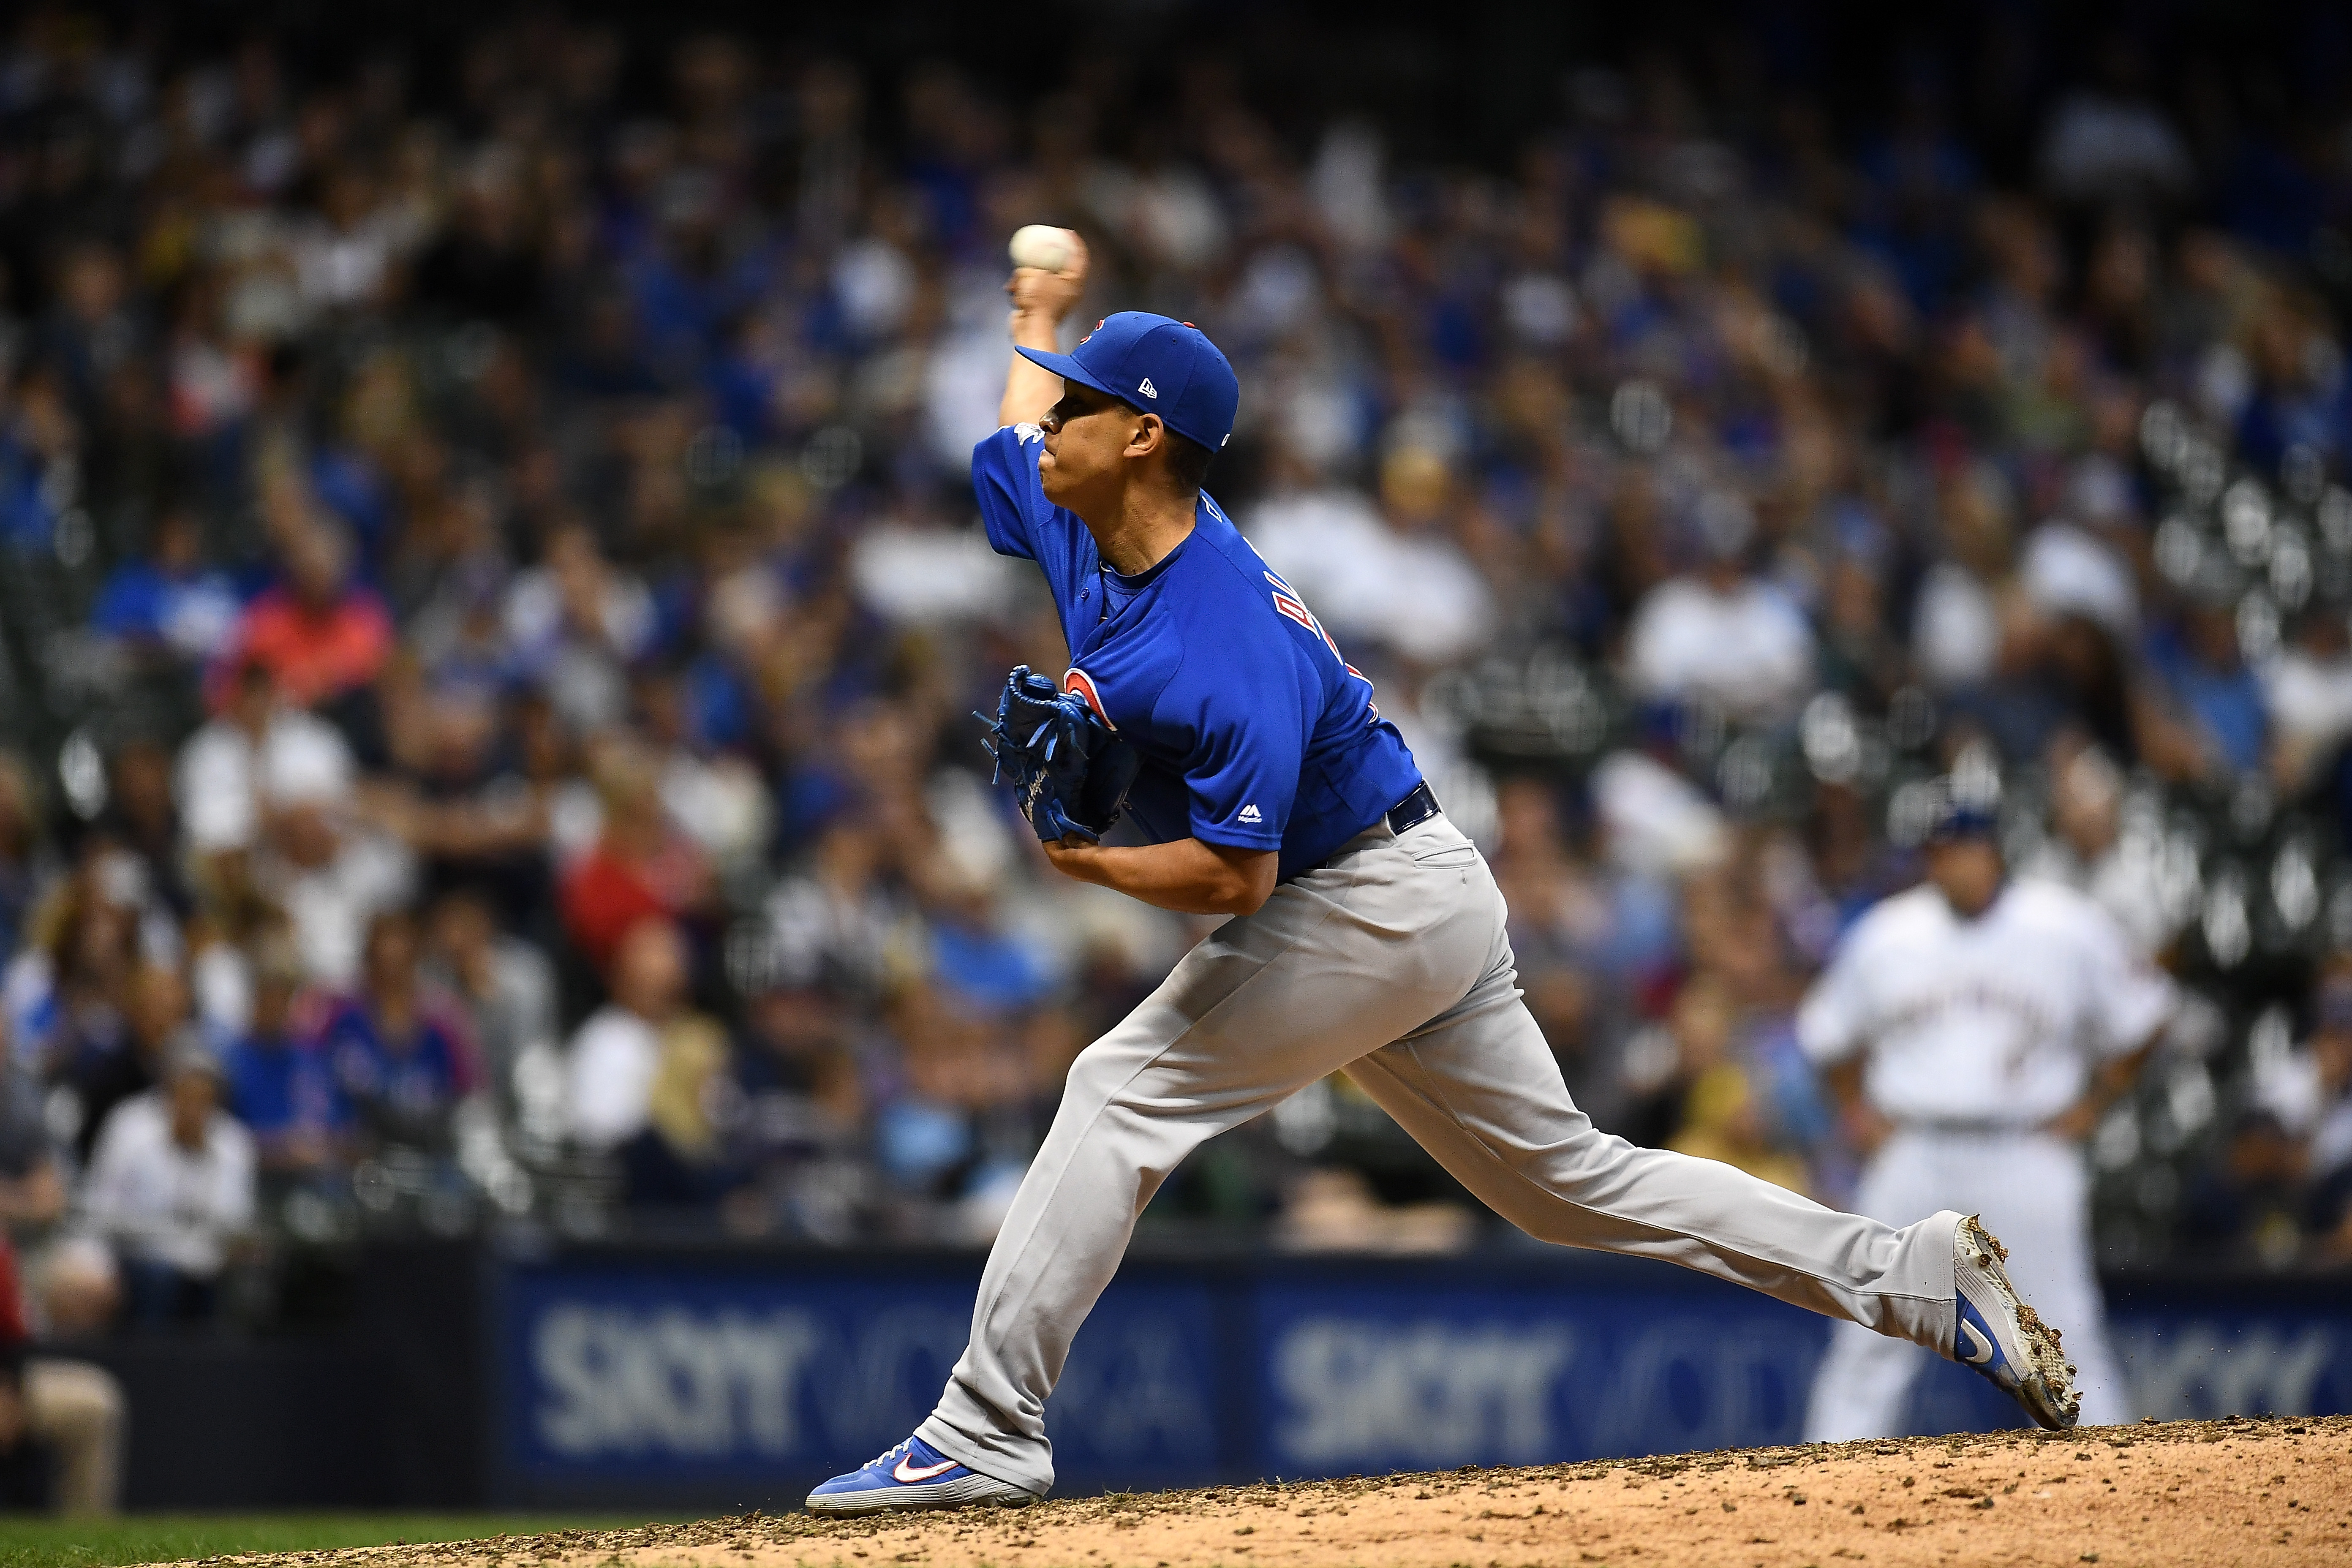 After making his major-league debut last season, Adbert Alzolay believe he has a realistic shot at starting this season with the Cubs.